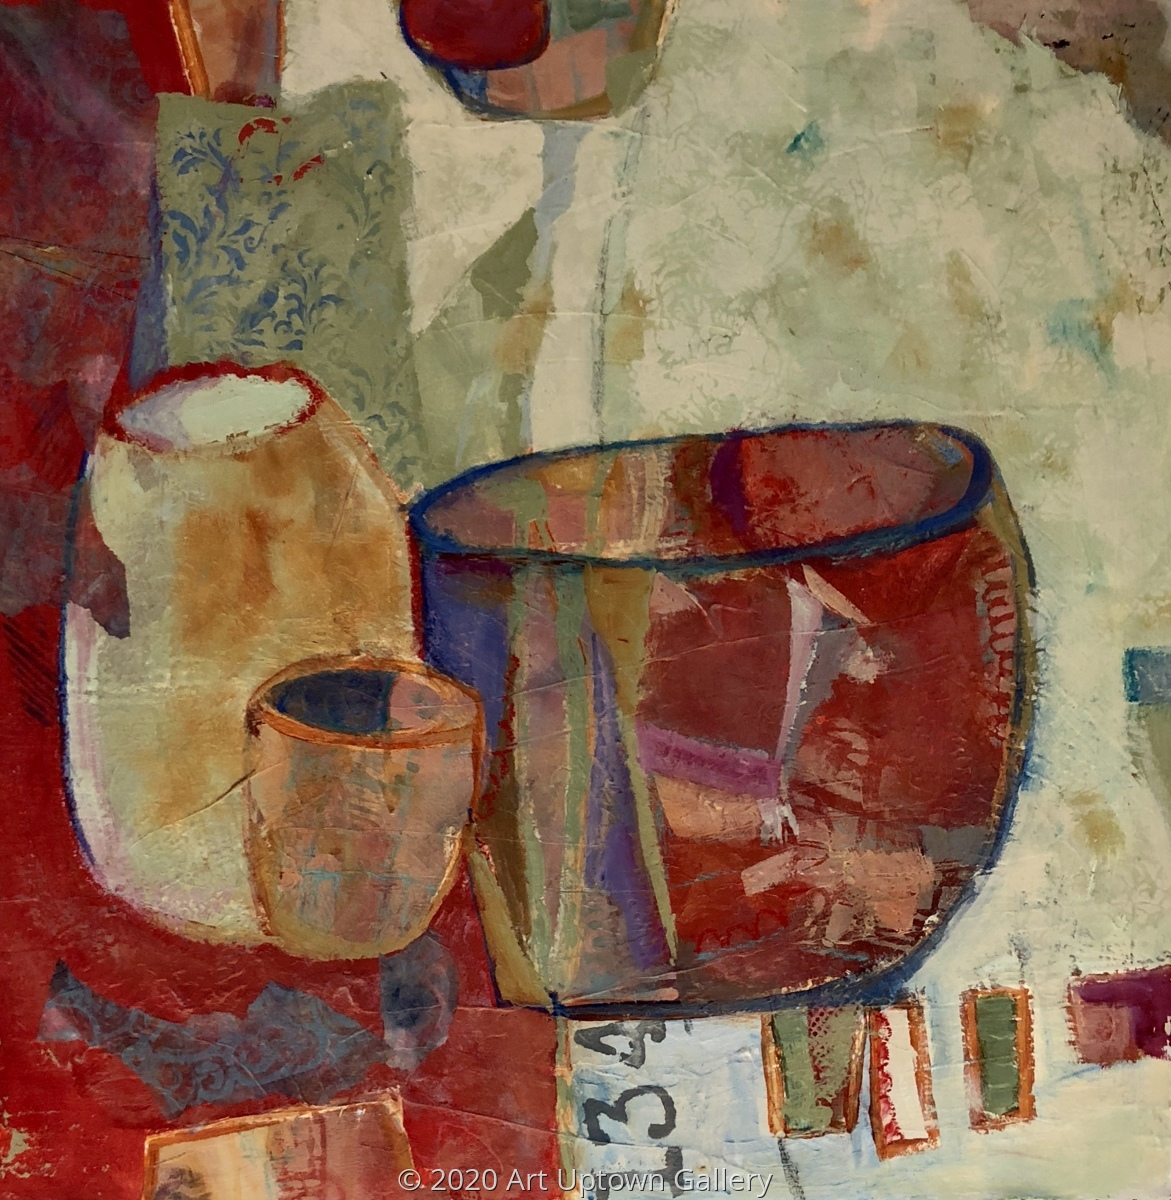 'Still Life In Reds' by Krasner (large view)